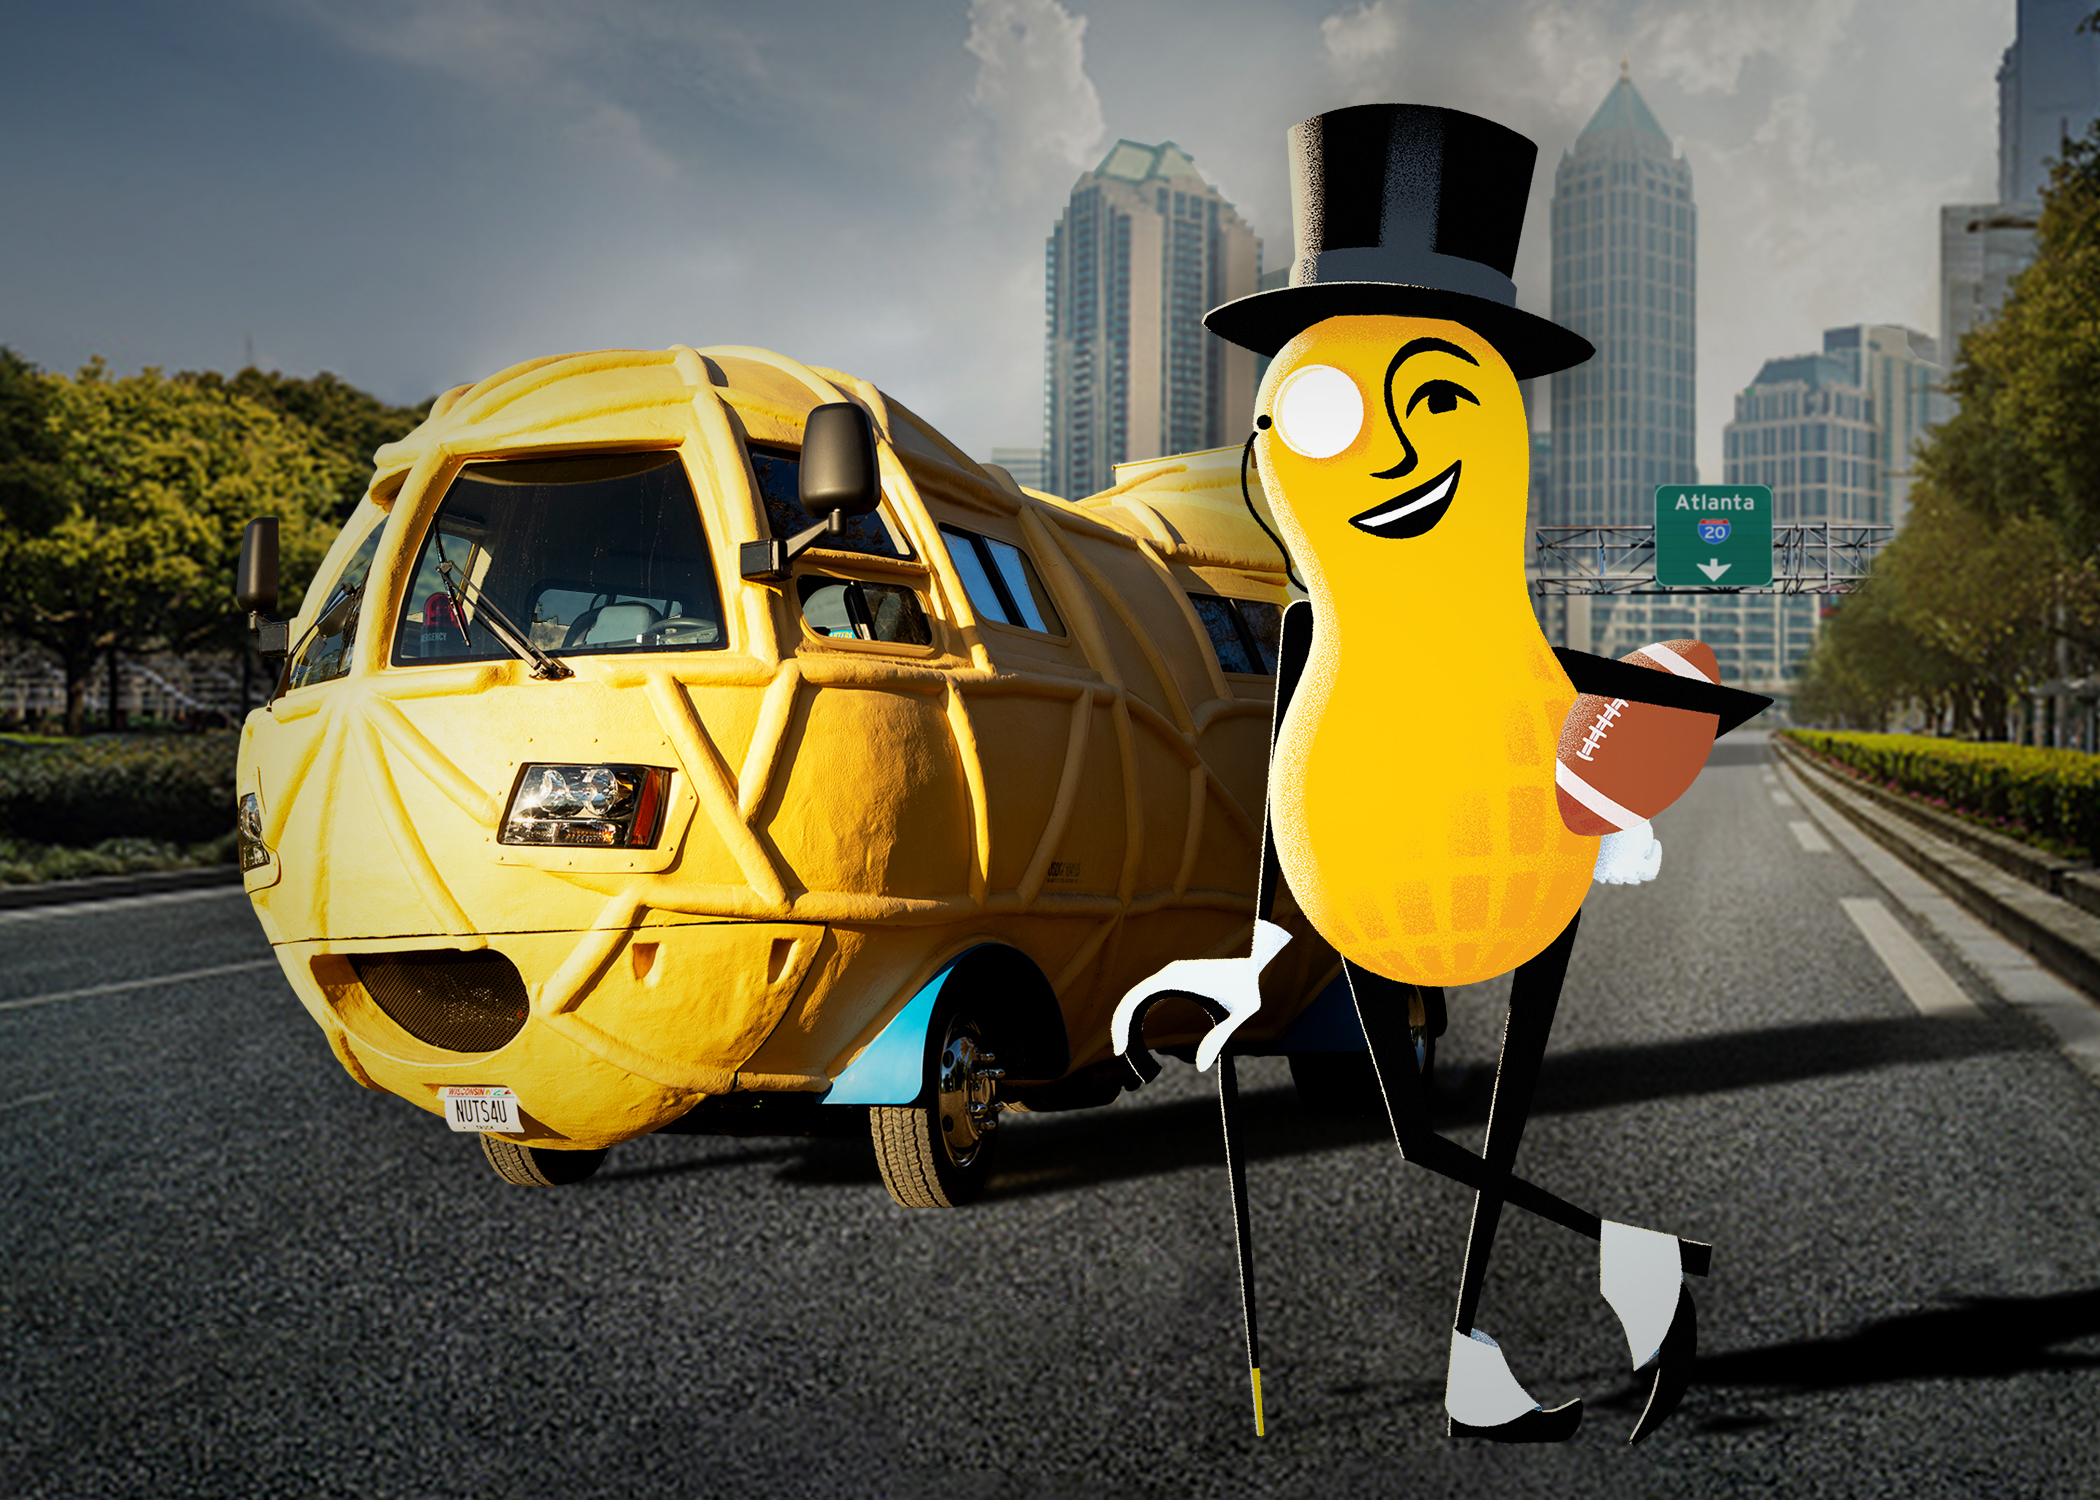 2019 Planters and Devour to Air Super bowl commercials in 2019